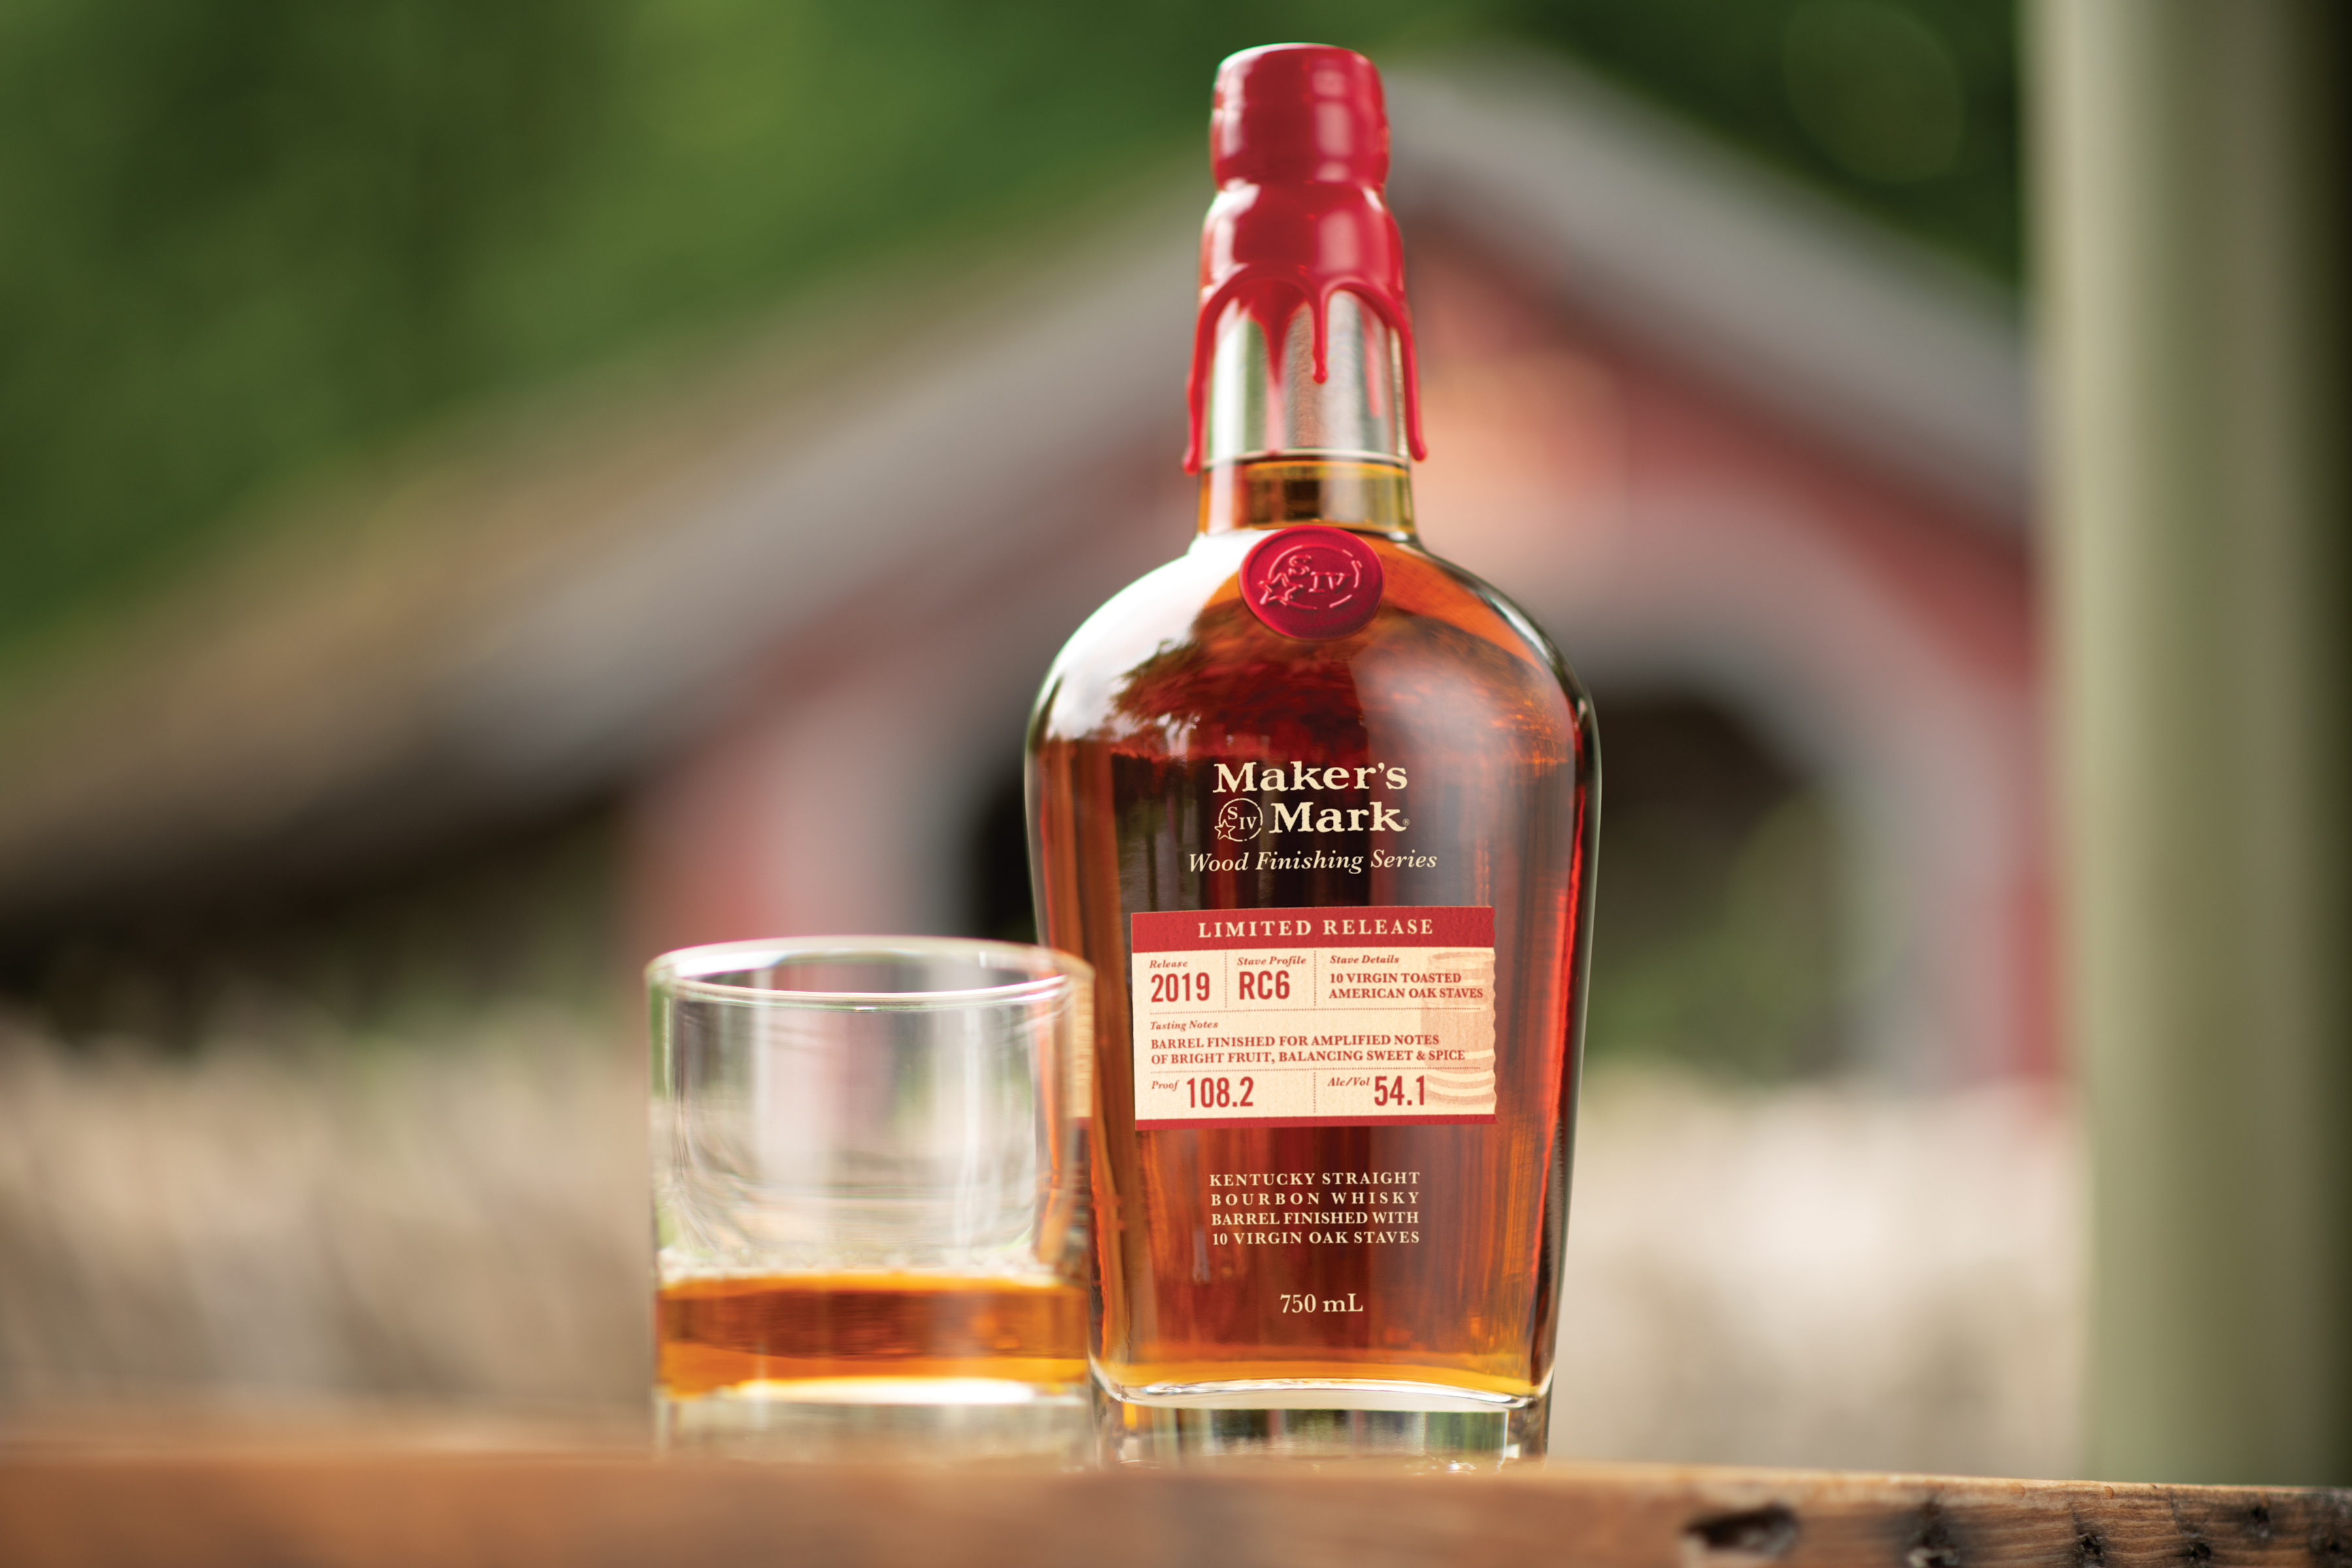 Maker's Mark Announces Wood Finishing Series, Their First-Ever National Limited Release Bourbon